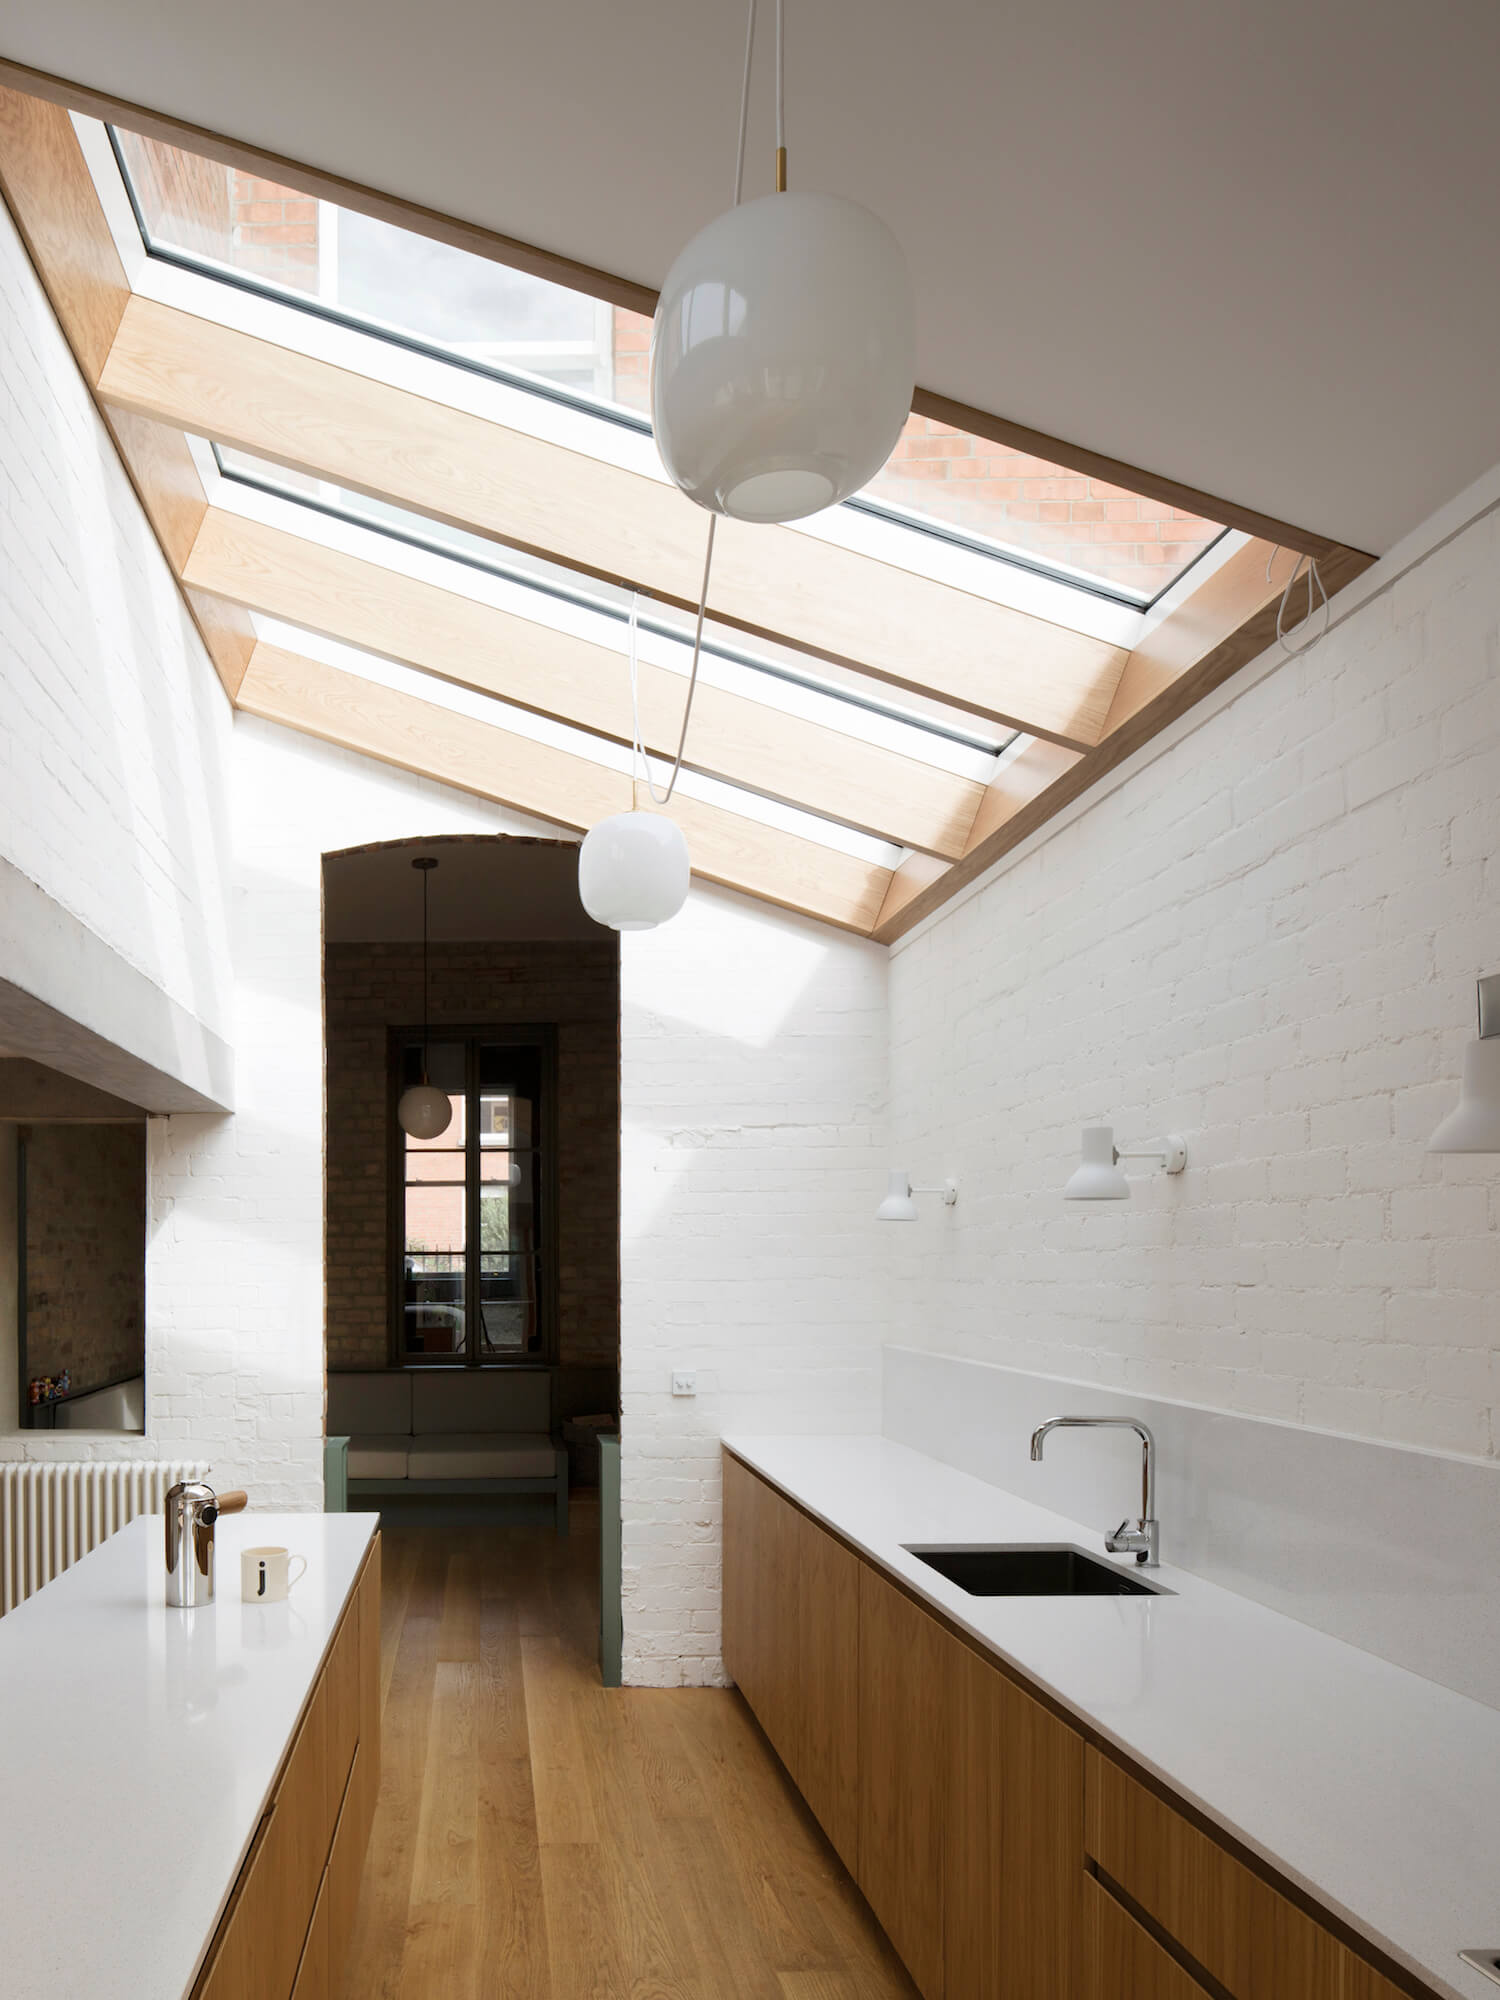 est living dublin house RWK architects 3